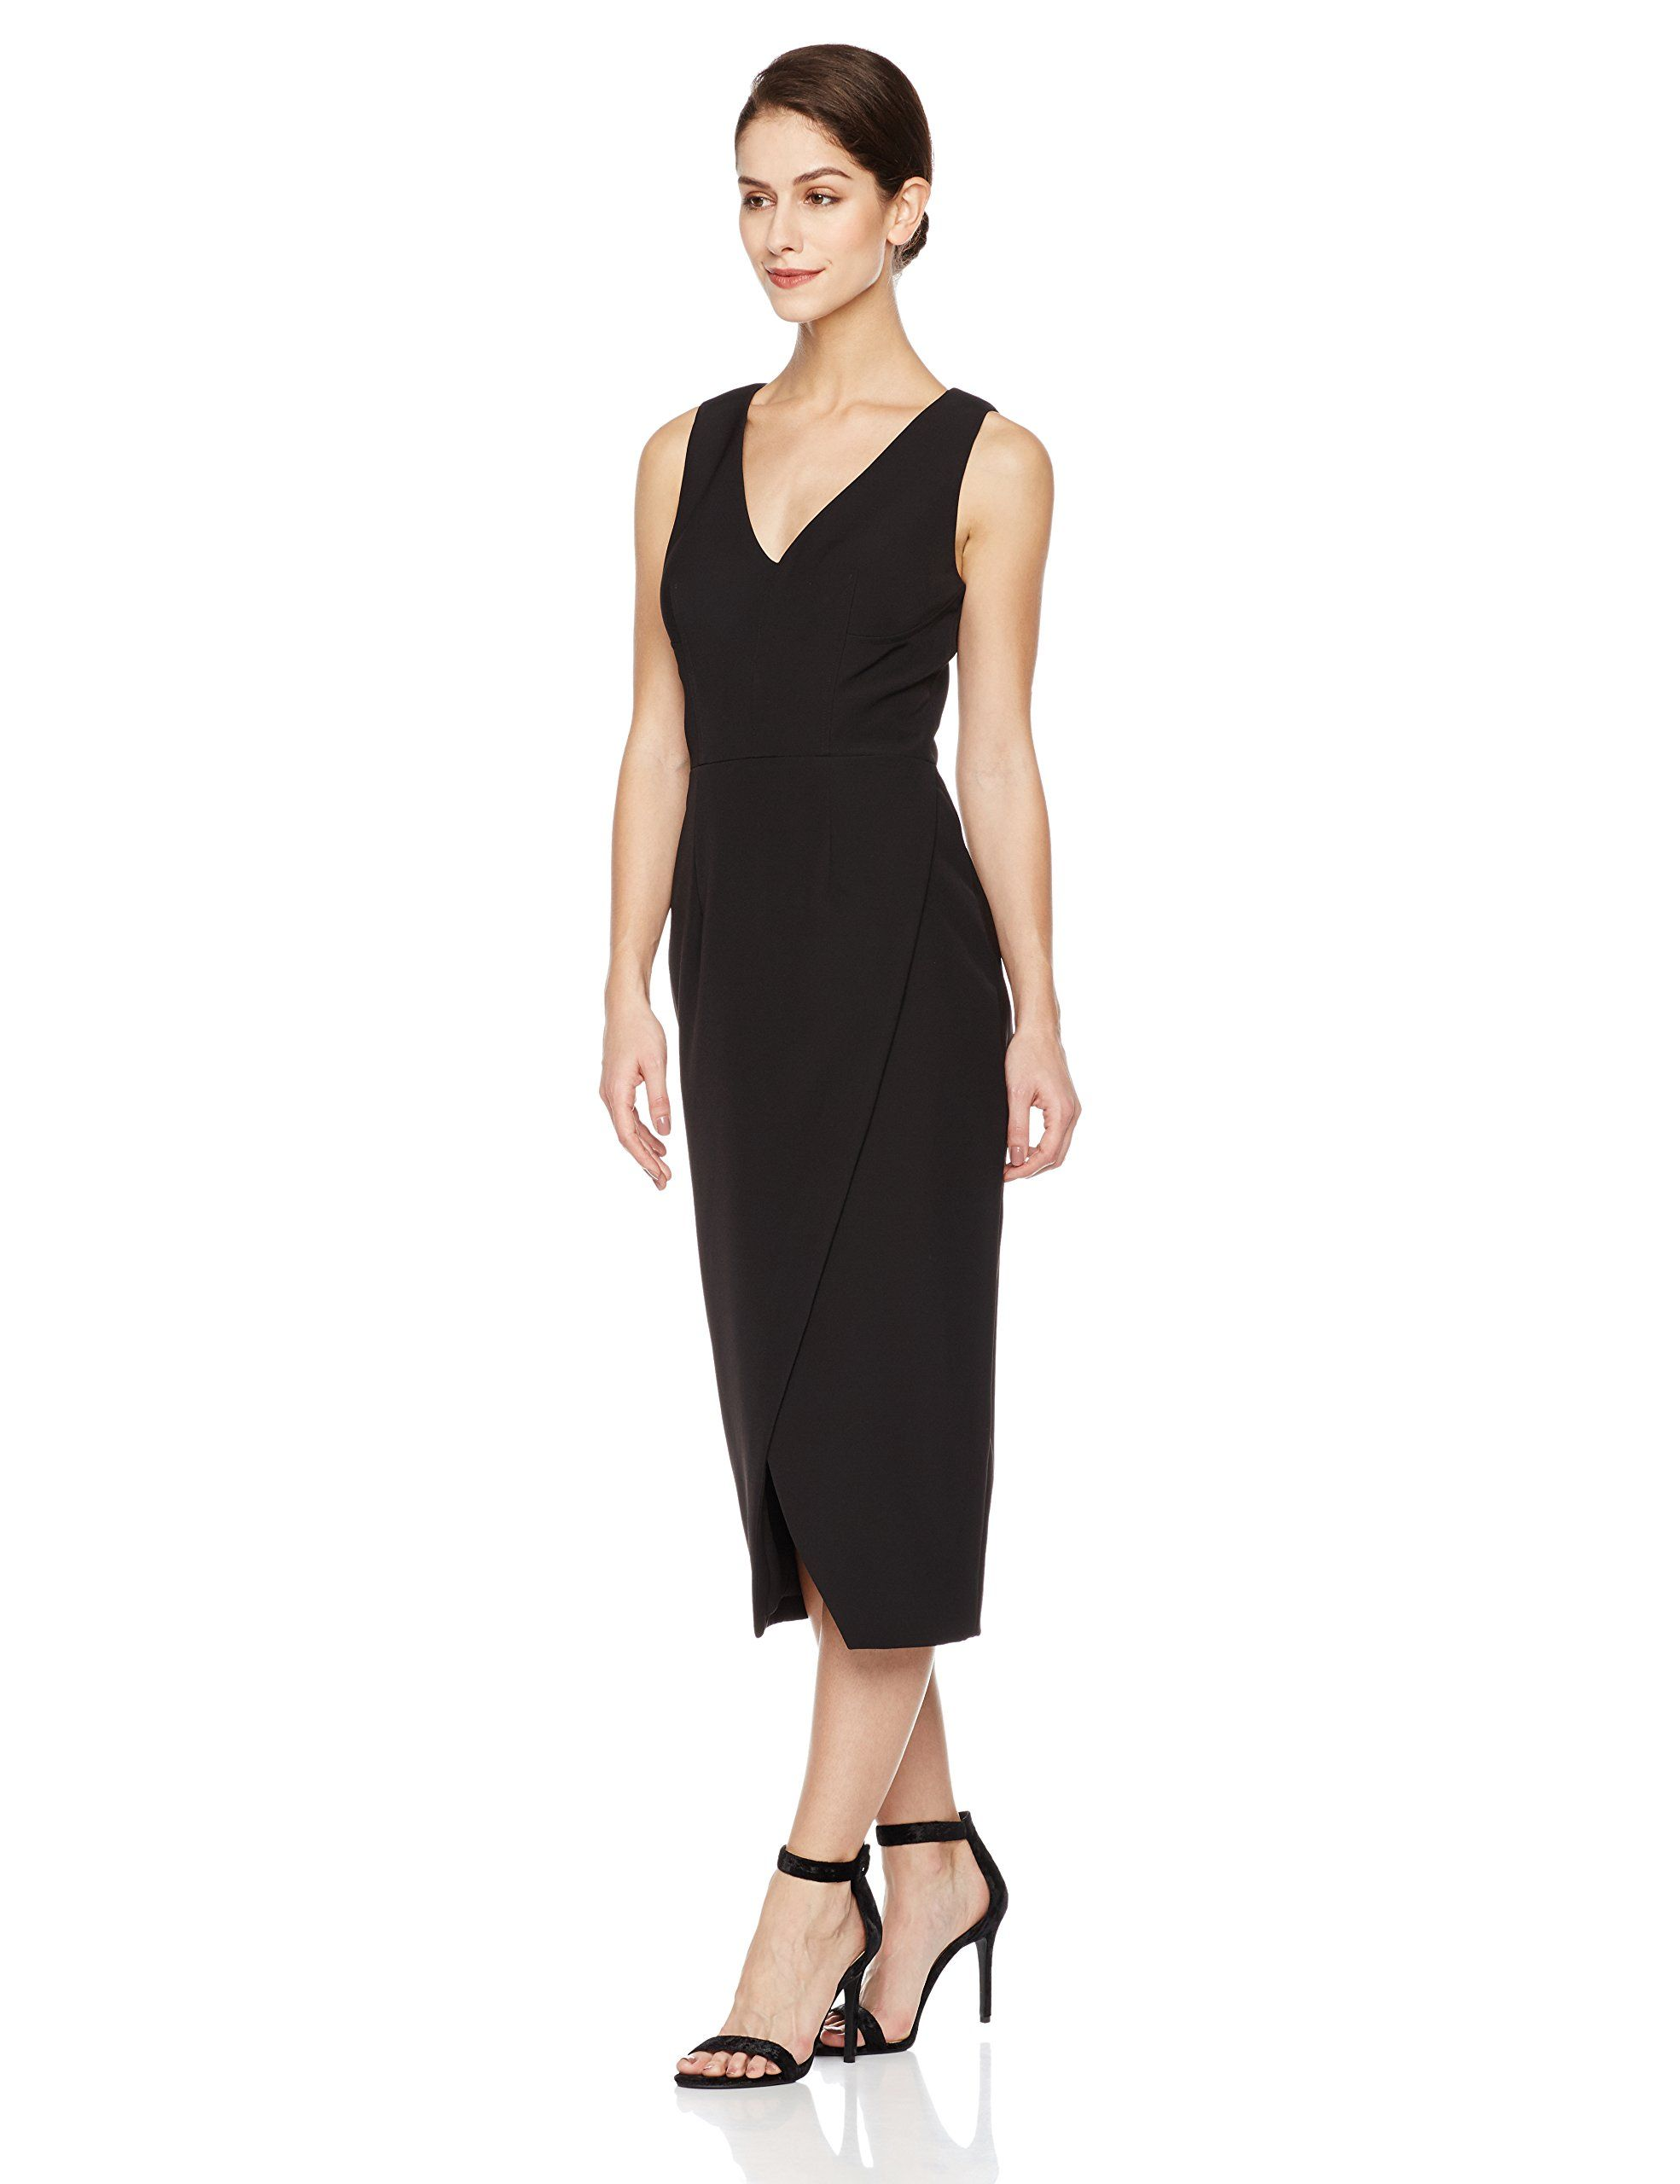 9f6408d8f Social Graces Womens VNeck Overlap Skirt Stretch Crepe Back CutOut Pencil  Dress 16 Black ** Find out more at the picture link. (This is an affiliate  link).